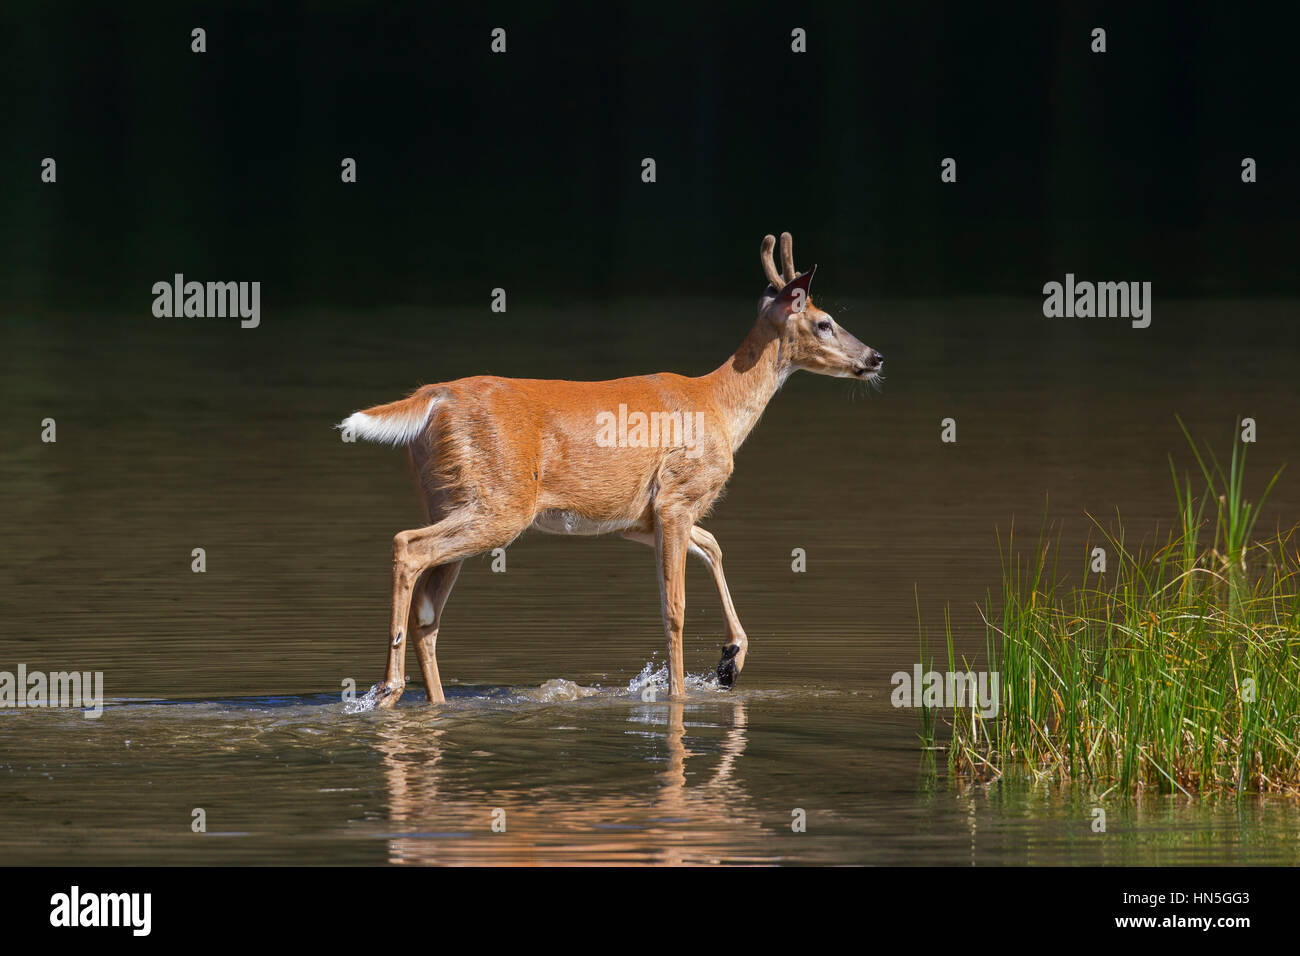 Whitetail deer / white-tailed deer (Odocoileus virginianus), young buck with antlers covered in velvet in shallow Stock Photo